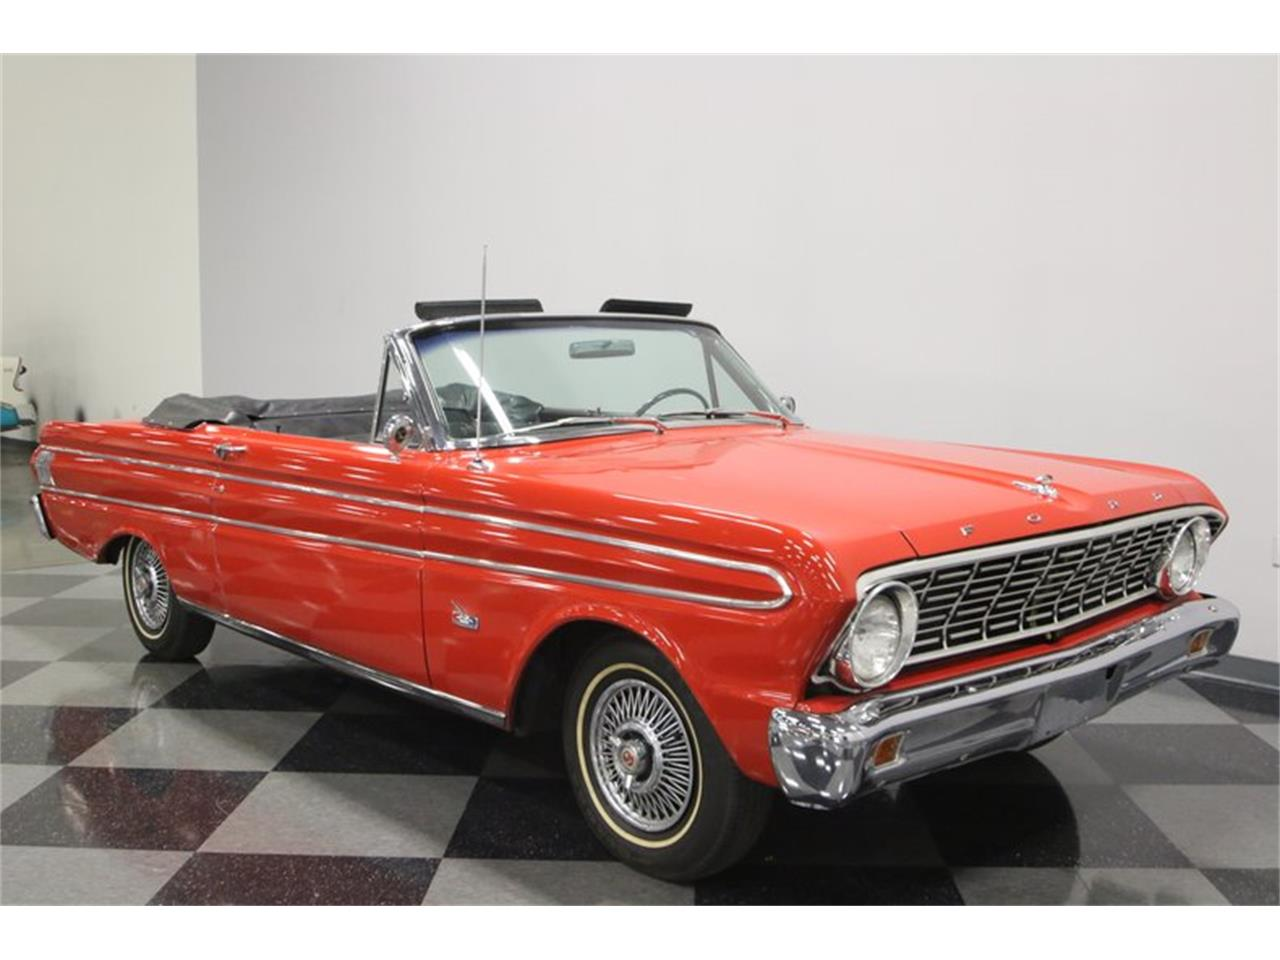 1964 Ford Falcon Futura for sale in Lavergne, TN – photo 16